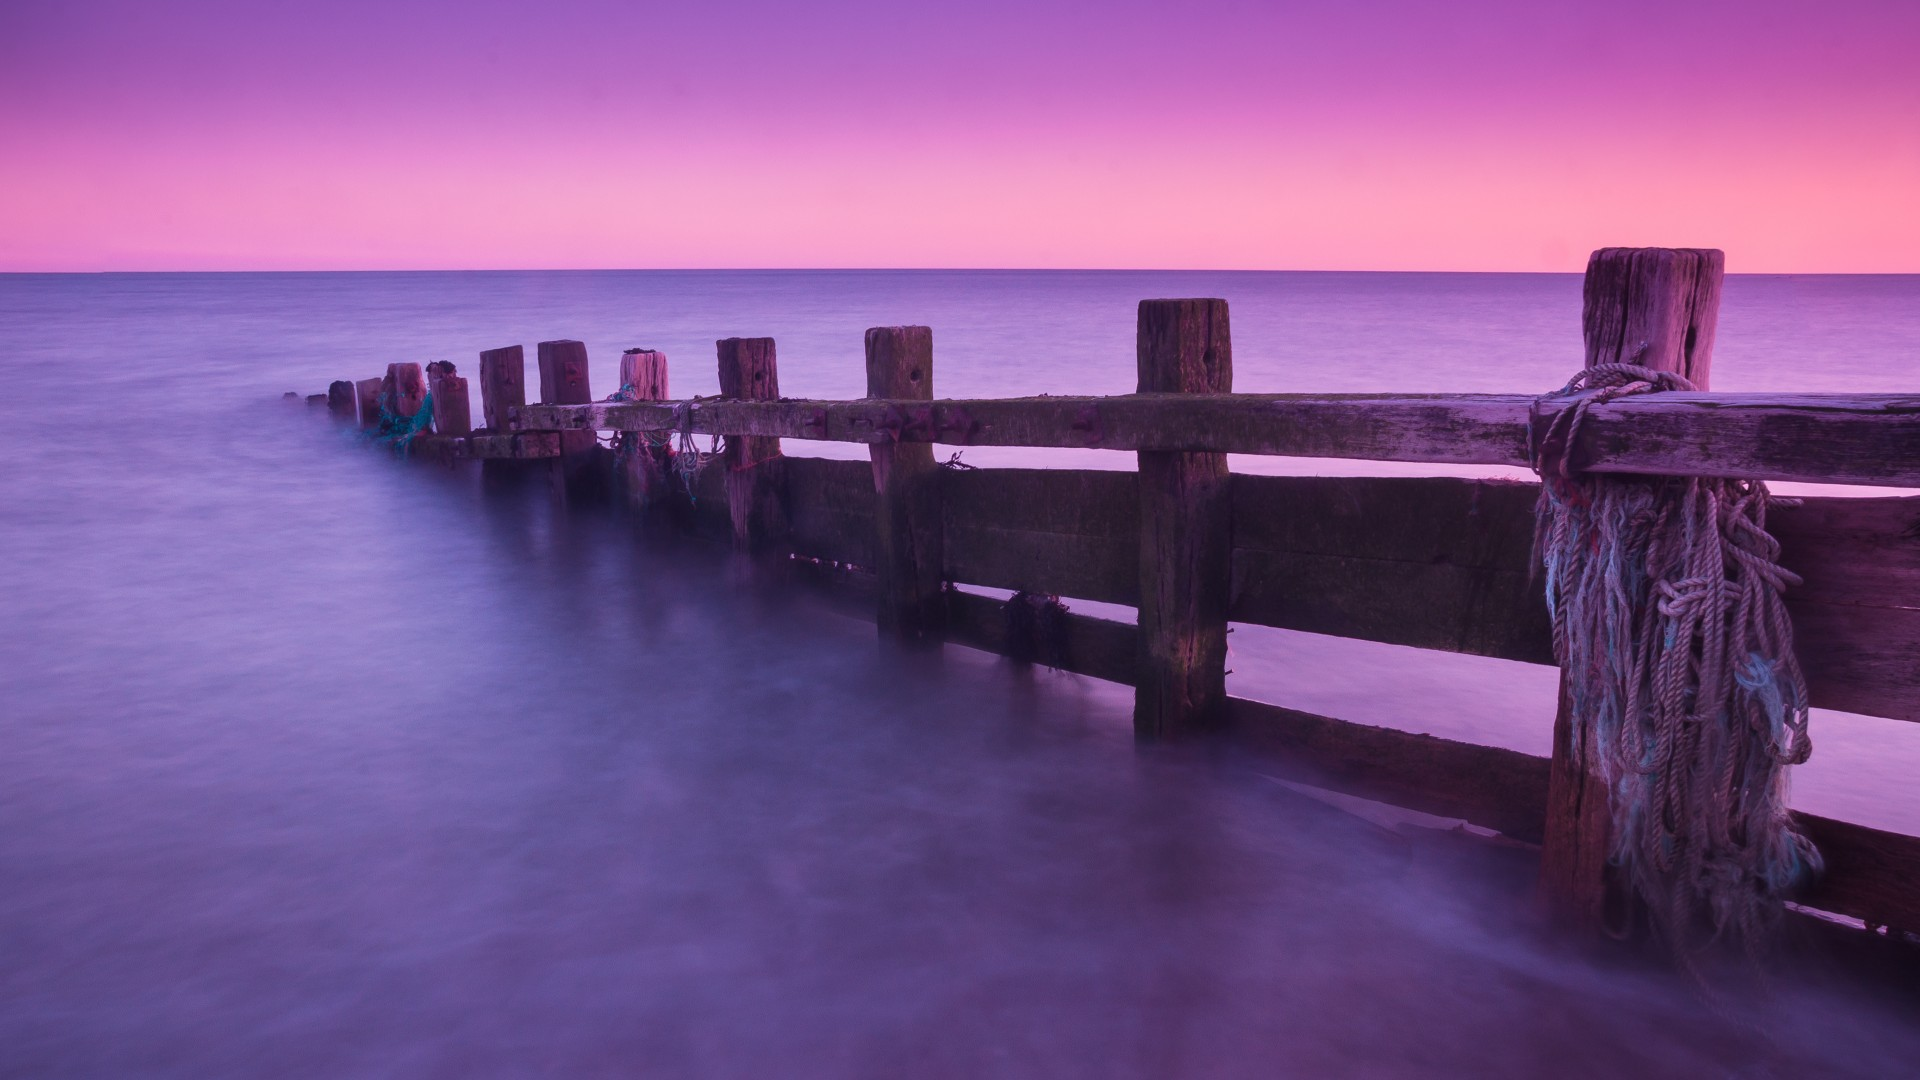 docks, 4k, HD wallpaper, abandoned, Seven Sisters Country Park, England, purple, pink, sunrise, sunset, sea, ocean, water, clear sky (horizontal)